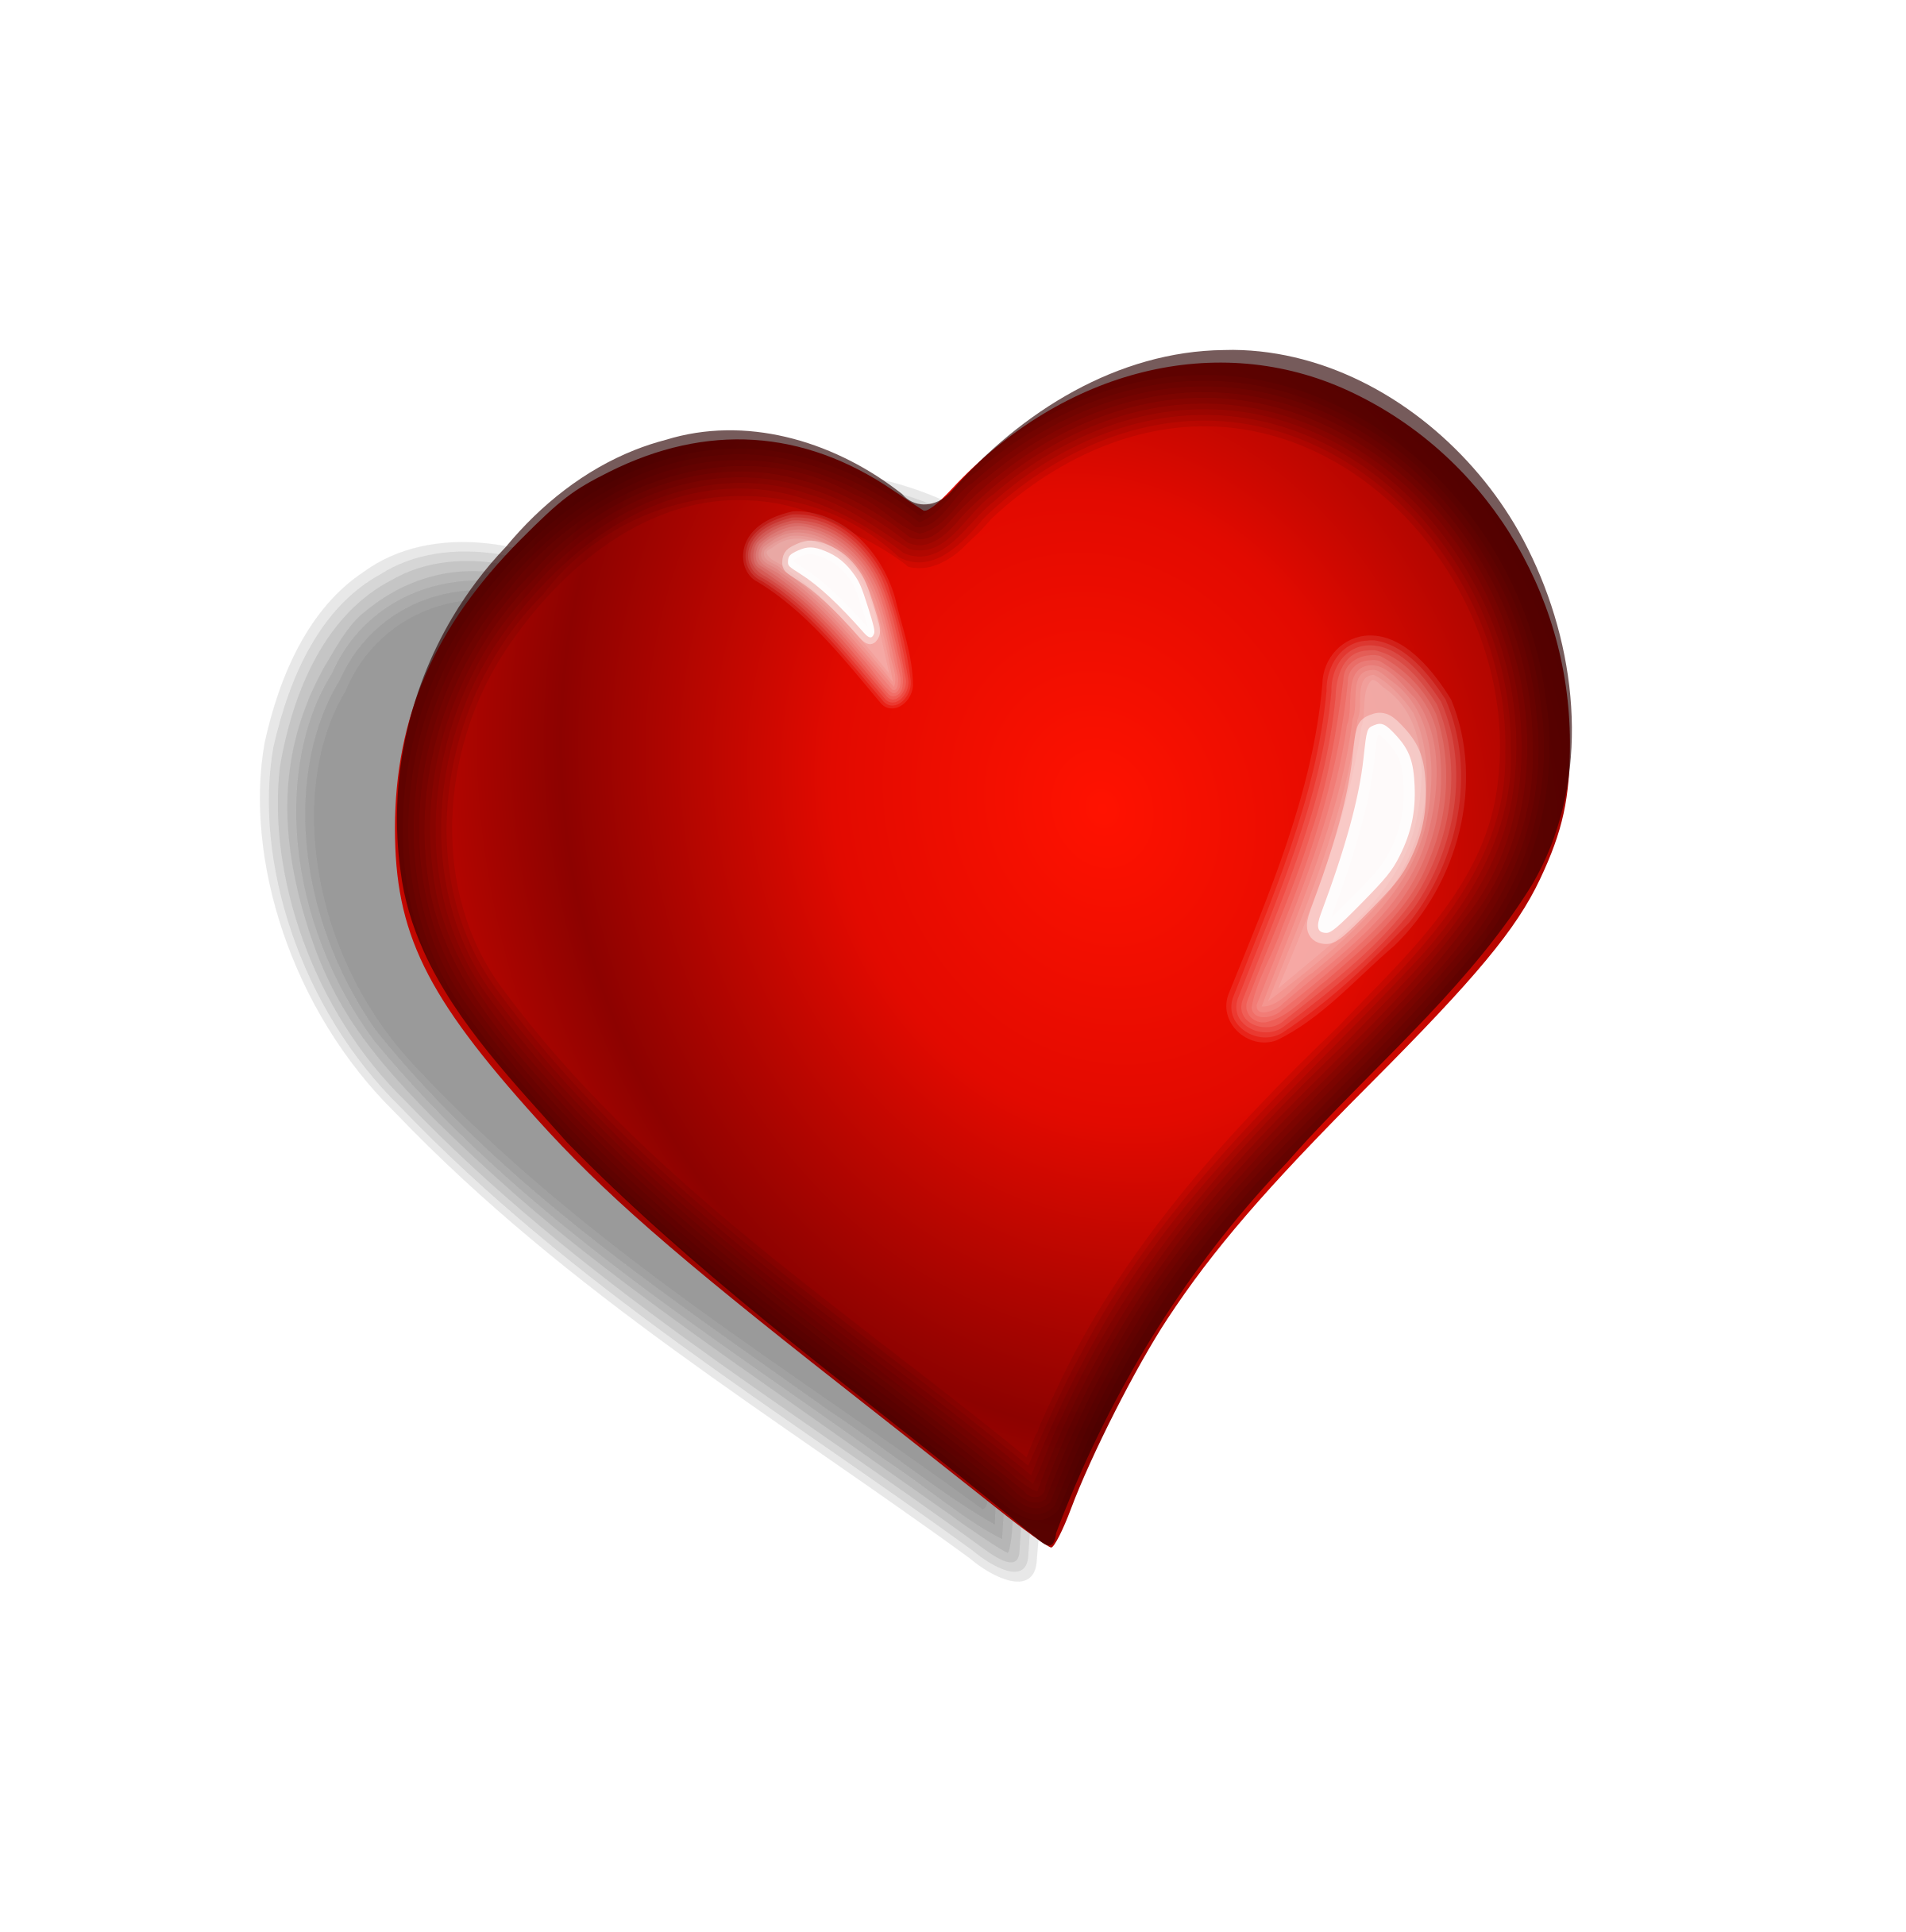 Red Heart Vector Graphics image - Free stock photo ...